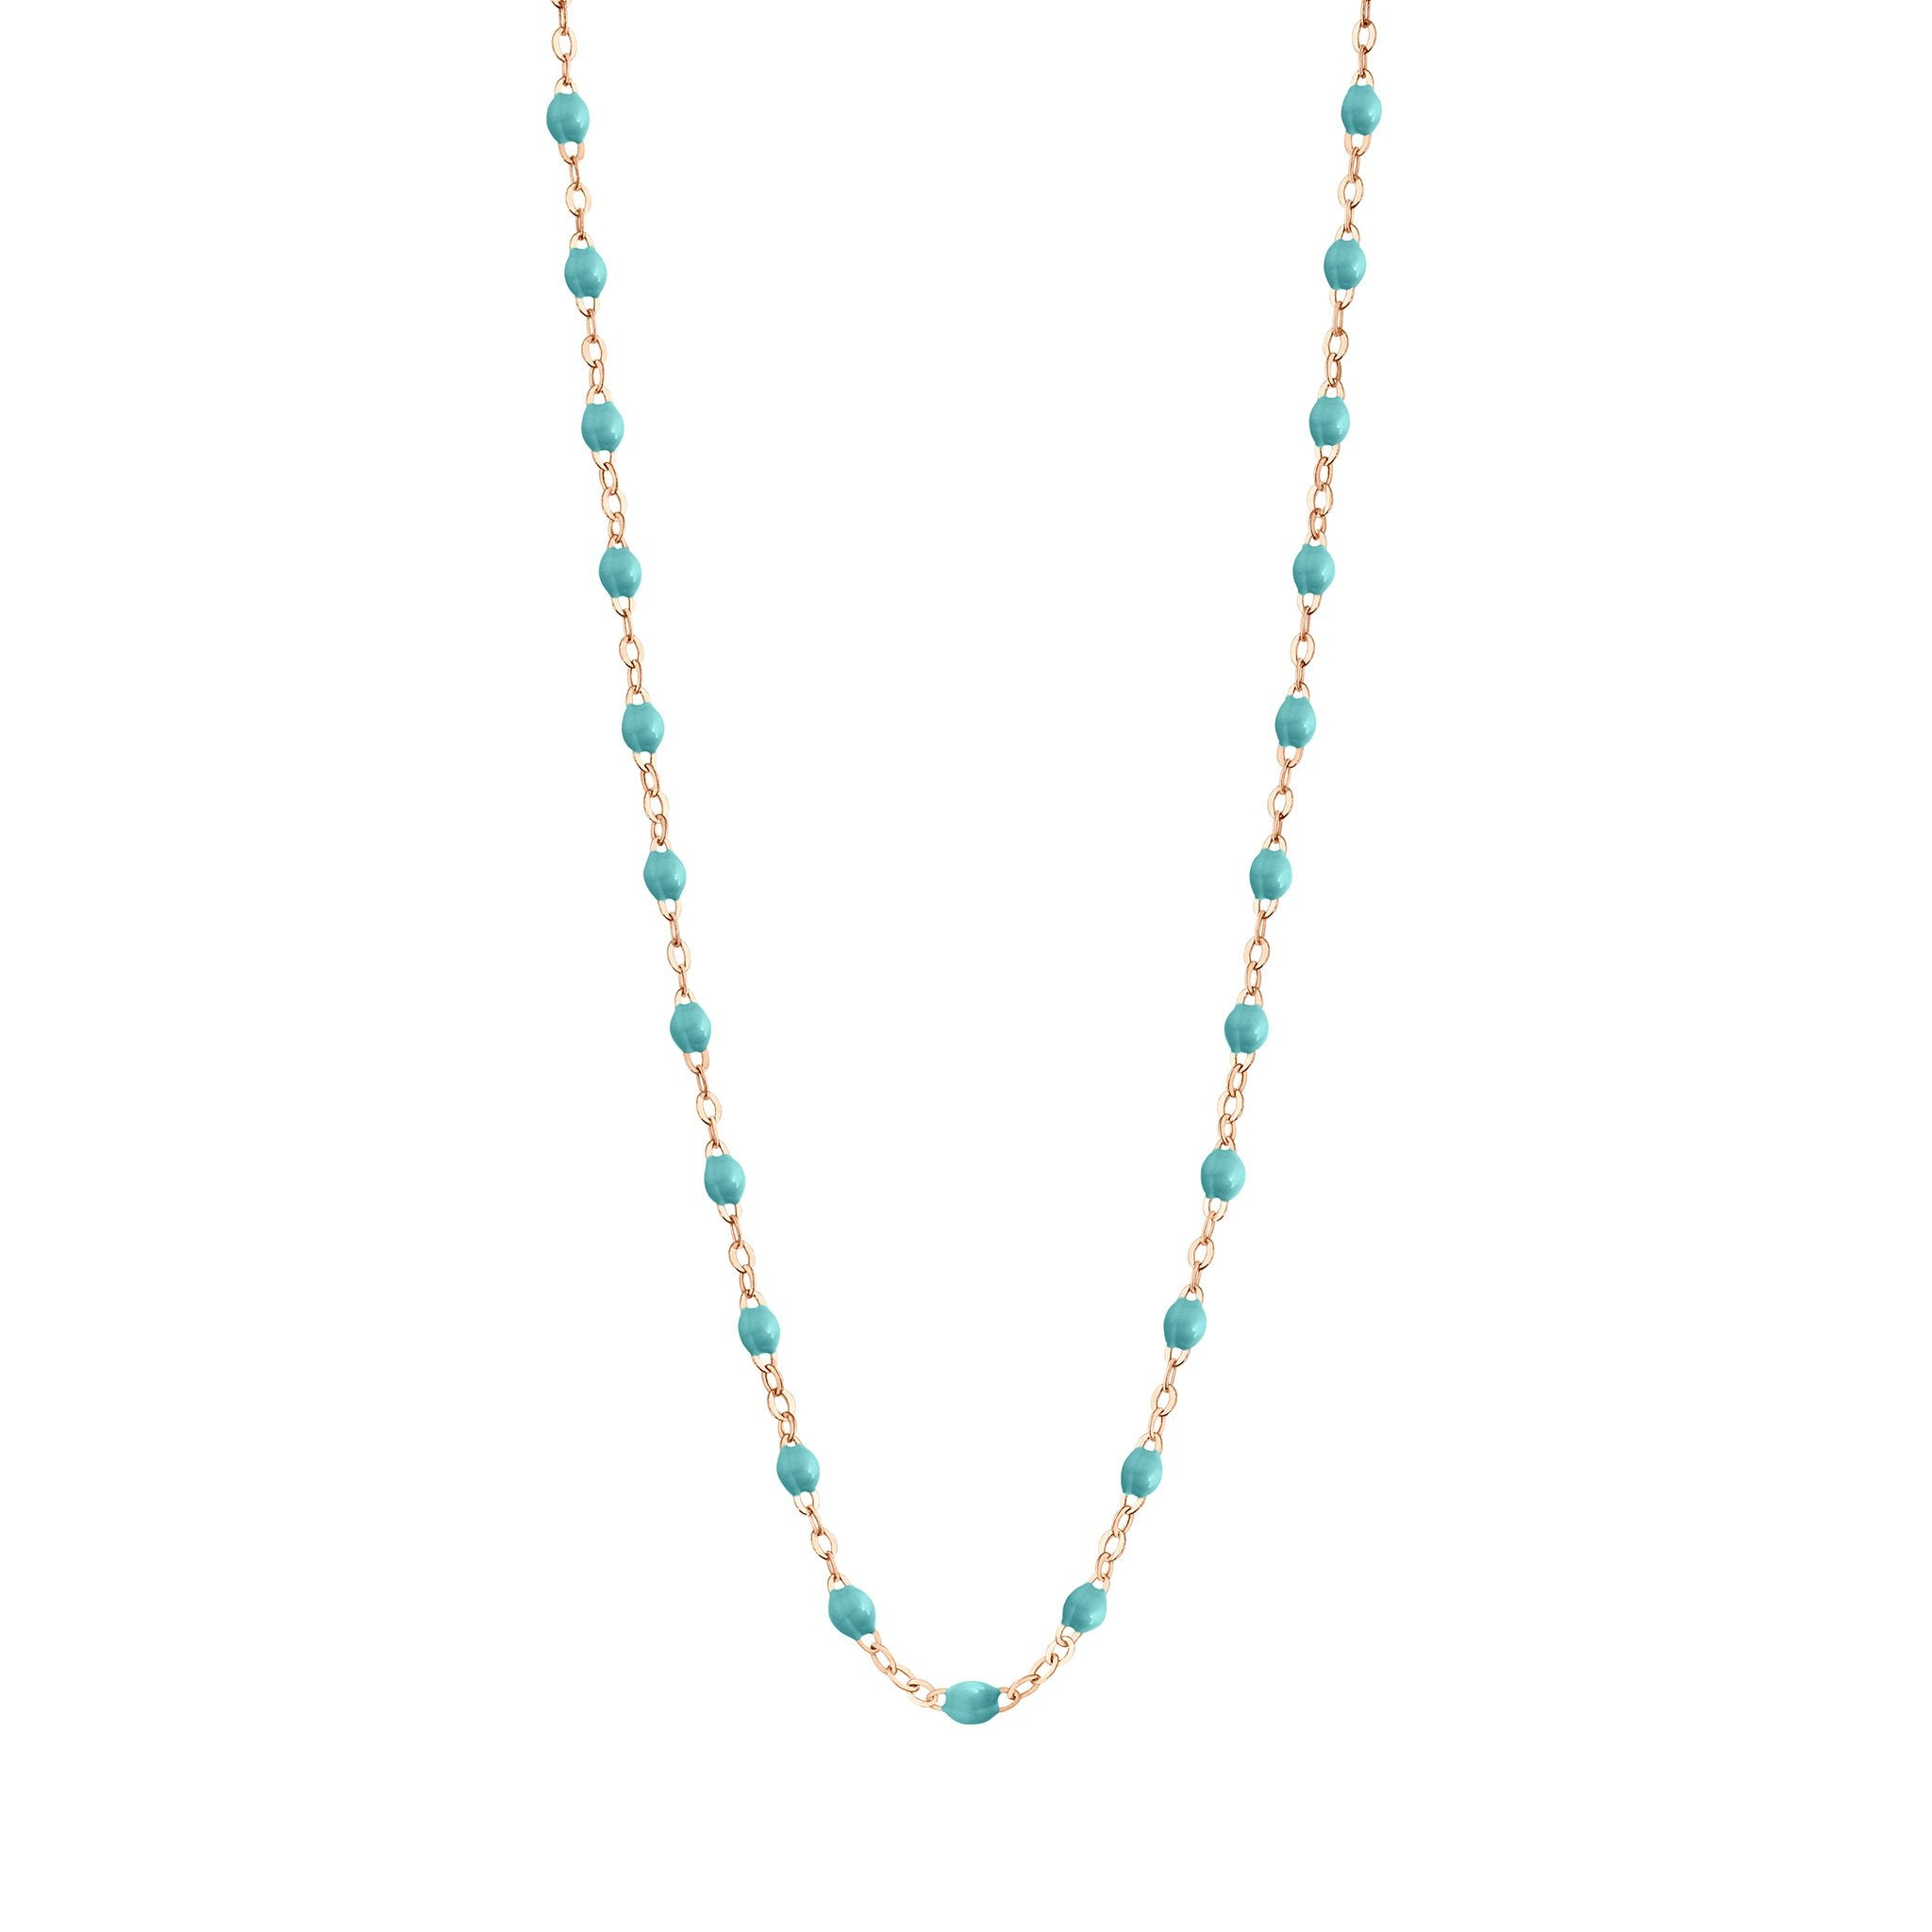 Gigi Clozeau - Classic Gigi Turquoise Green necklace, Rose Gold, 19.7""